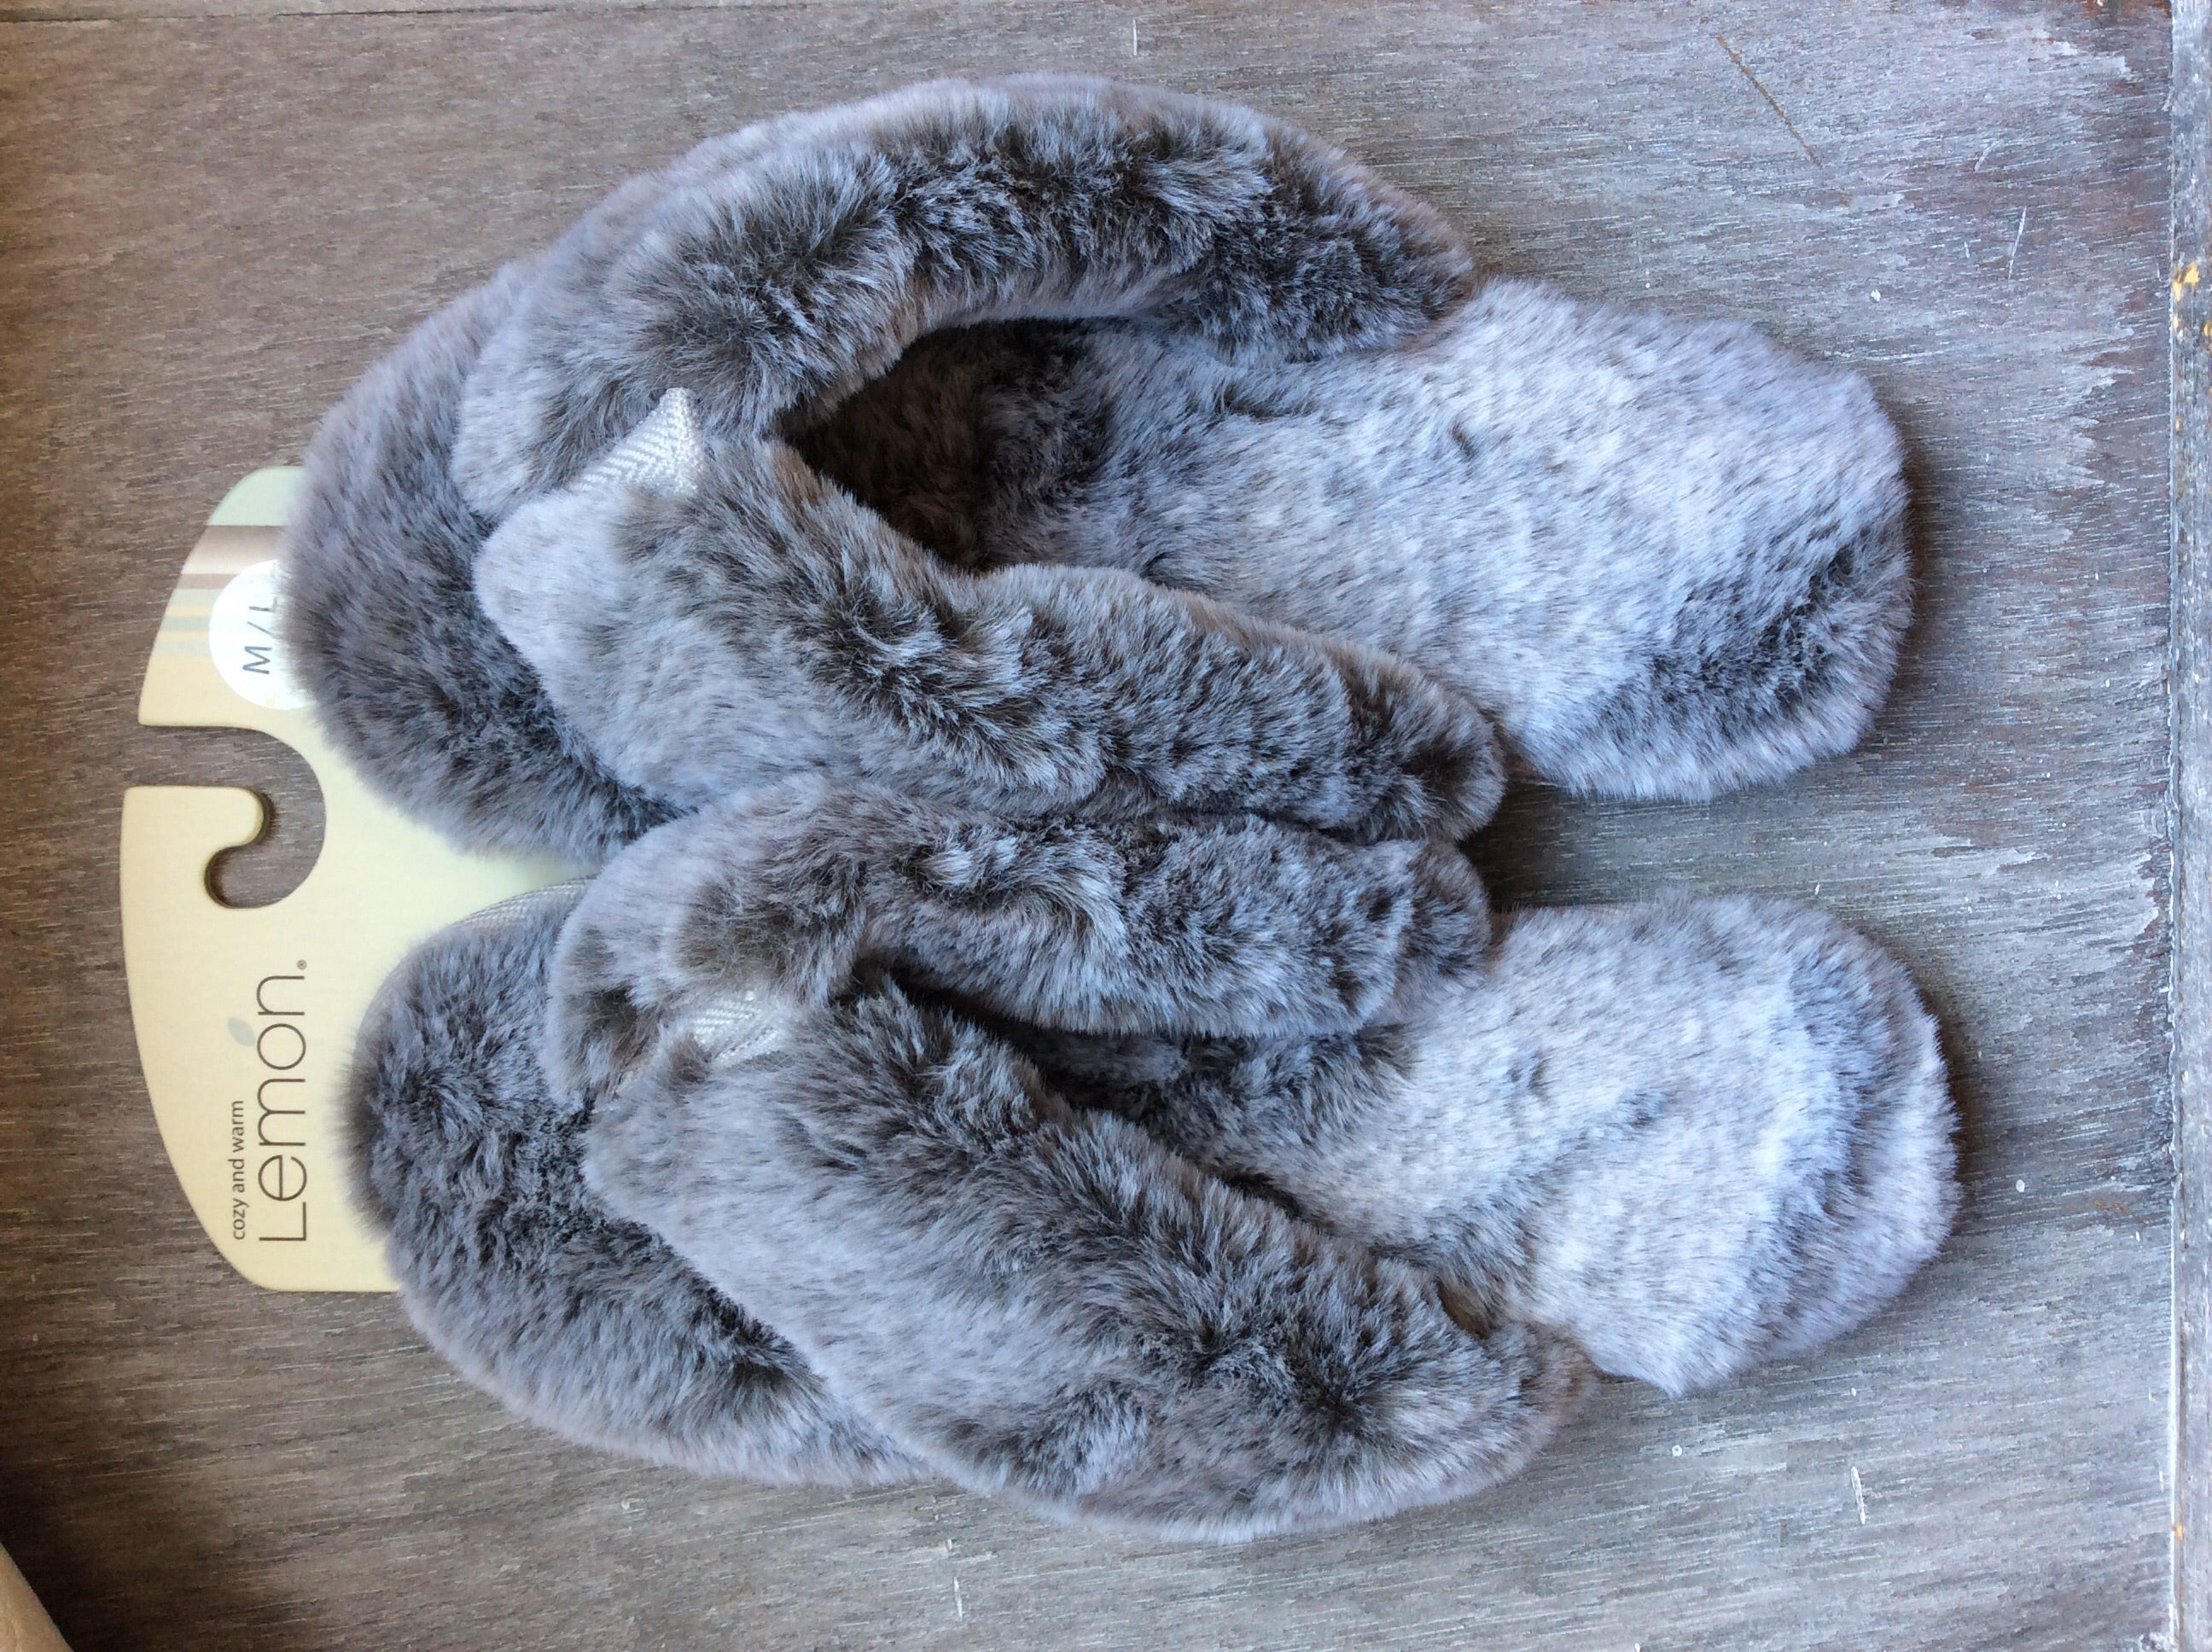 Waterfront Fur Flip Flop - House Slipper